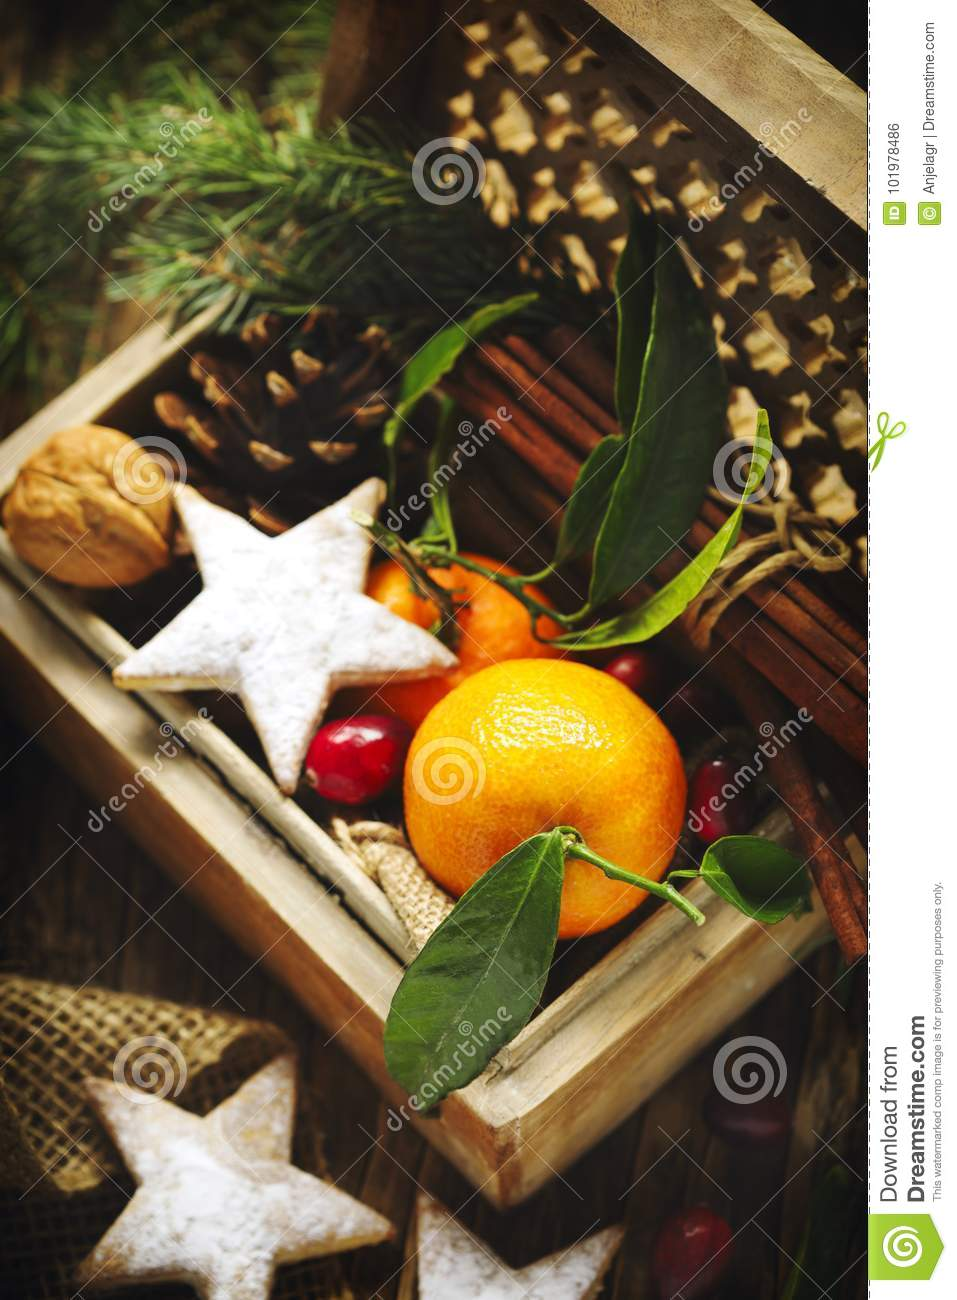 Christmas Gifts In Wooden Box. Stock Photo - Image of festive, home ...